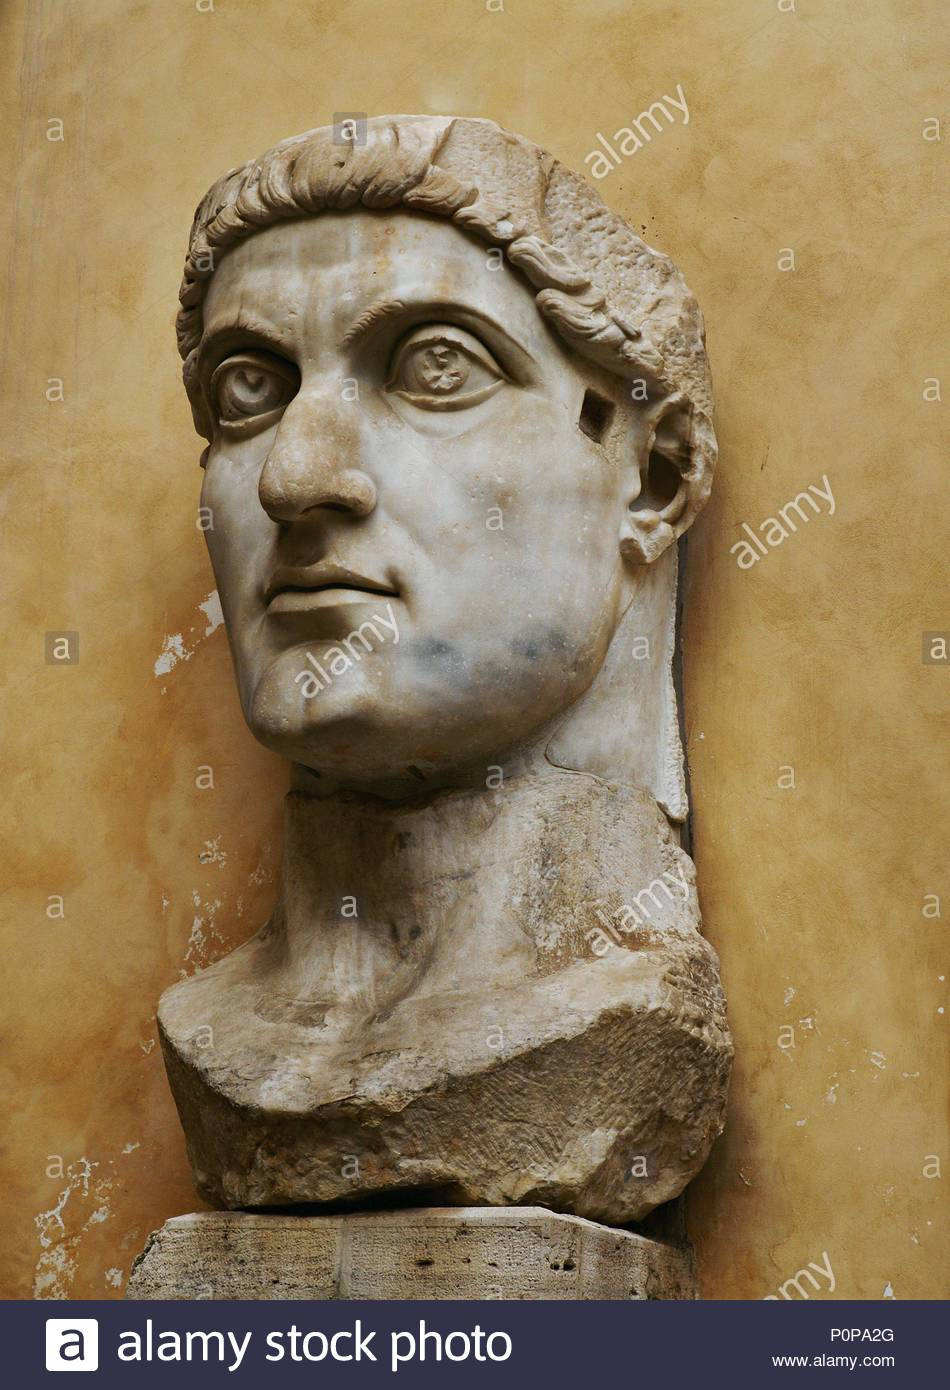 6faf58d911c Emperor Constantine the Great (306-337 CE). Marble head